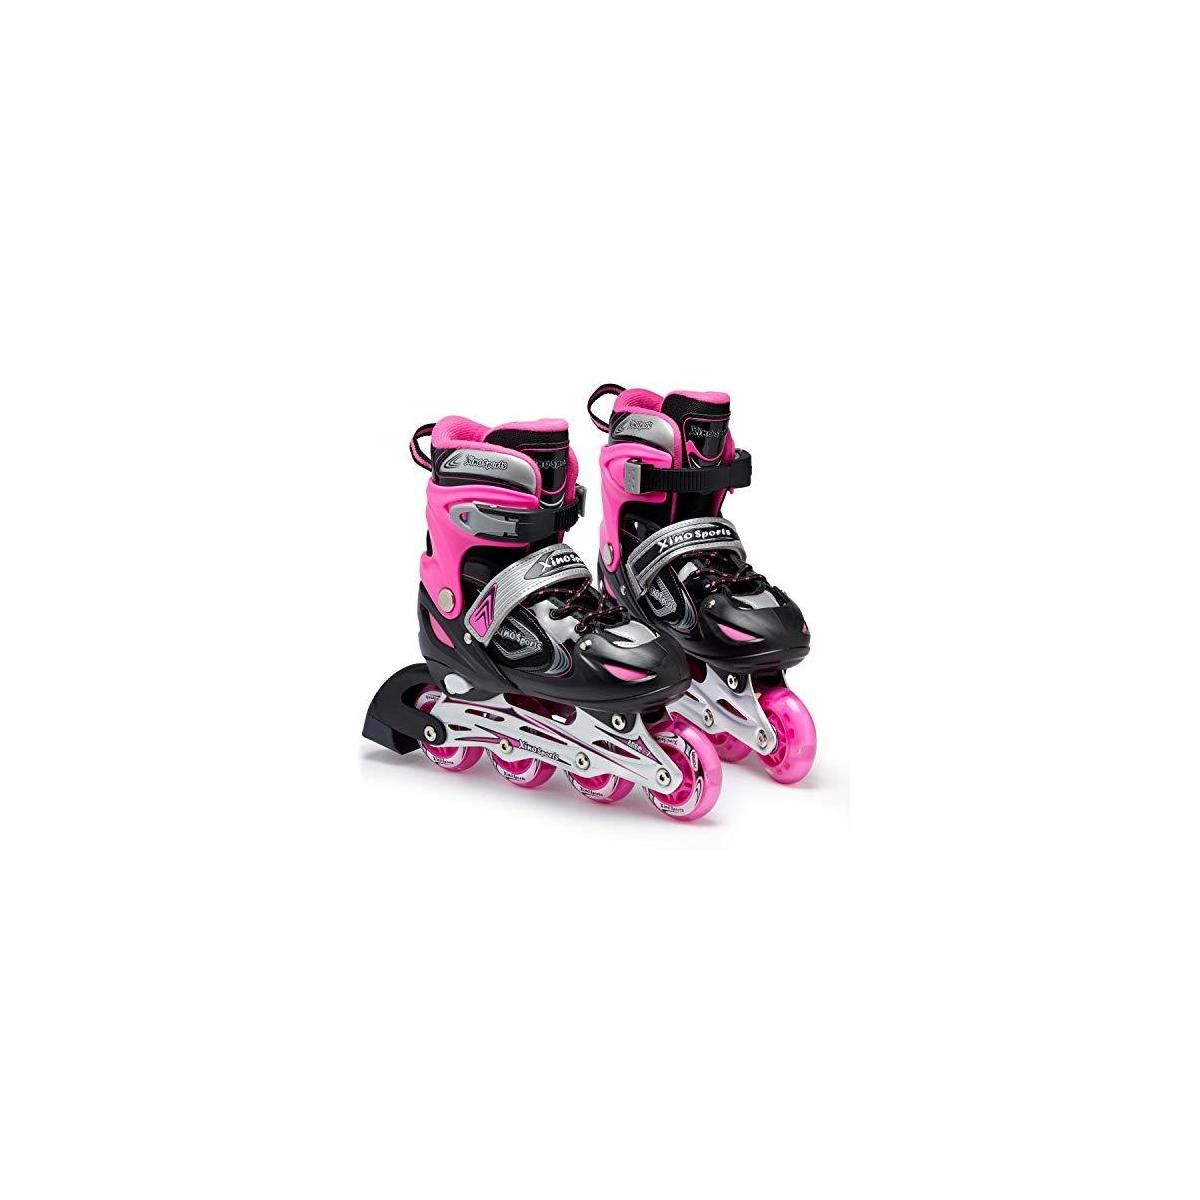 BLACK/PINK SKATES ONLY - PLEASE CLICK ON THE IMAGE OF THE BLACK/BLUE SKATES AND THEN CHOOSE PINK SKATES FROM THE LIST - XinoSports Adjustable Inline Skates - Featuring Light Up Illuminating Wheels, for Girls and Boys Ages 5-20; 1 Year Warranty